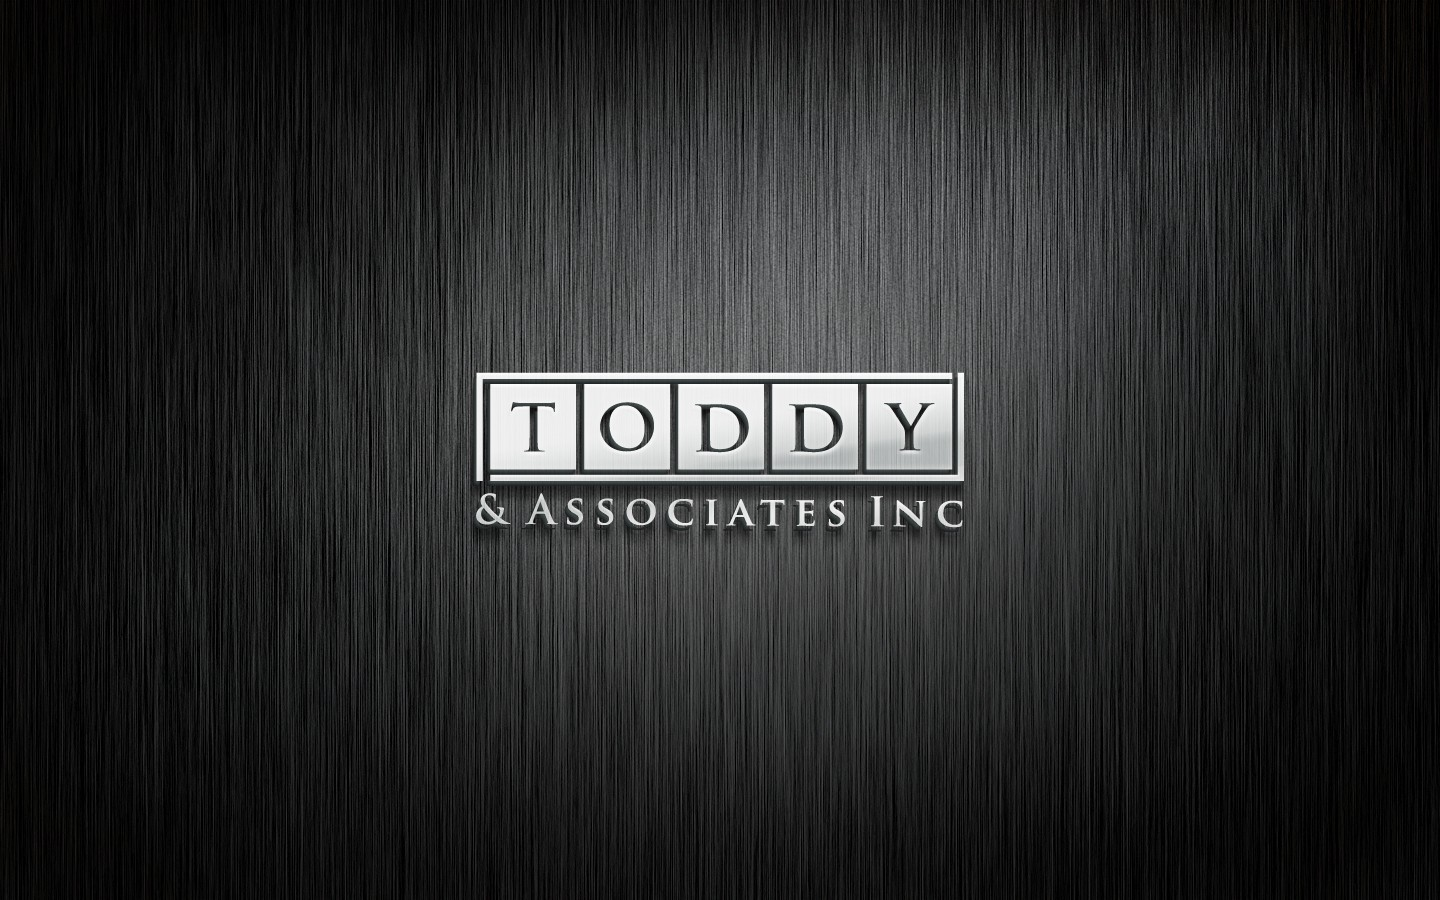 Toddy & Associates Inc needs a new logo